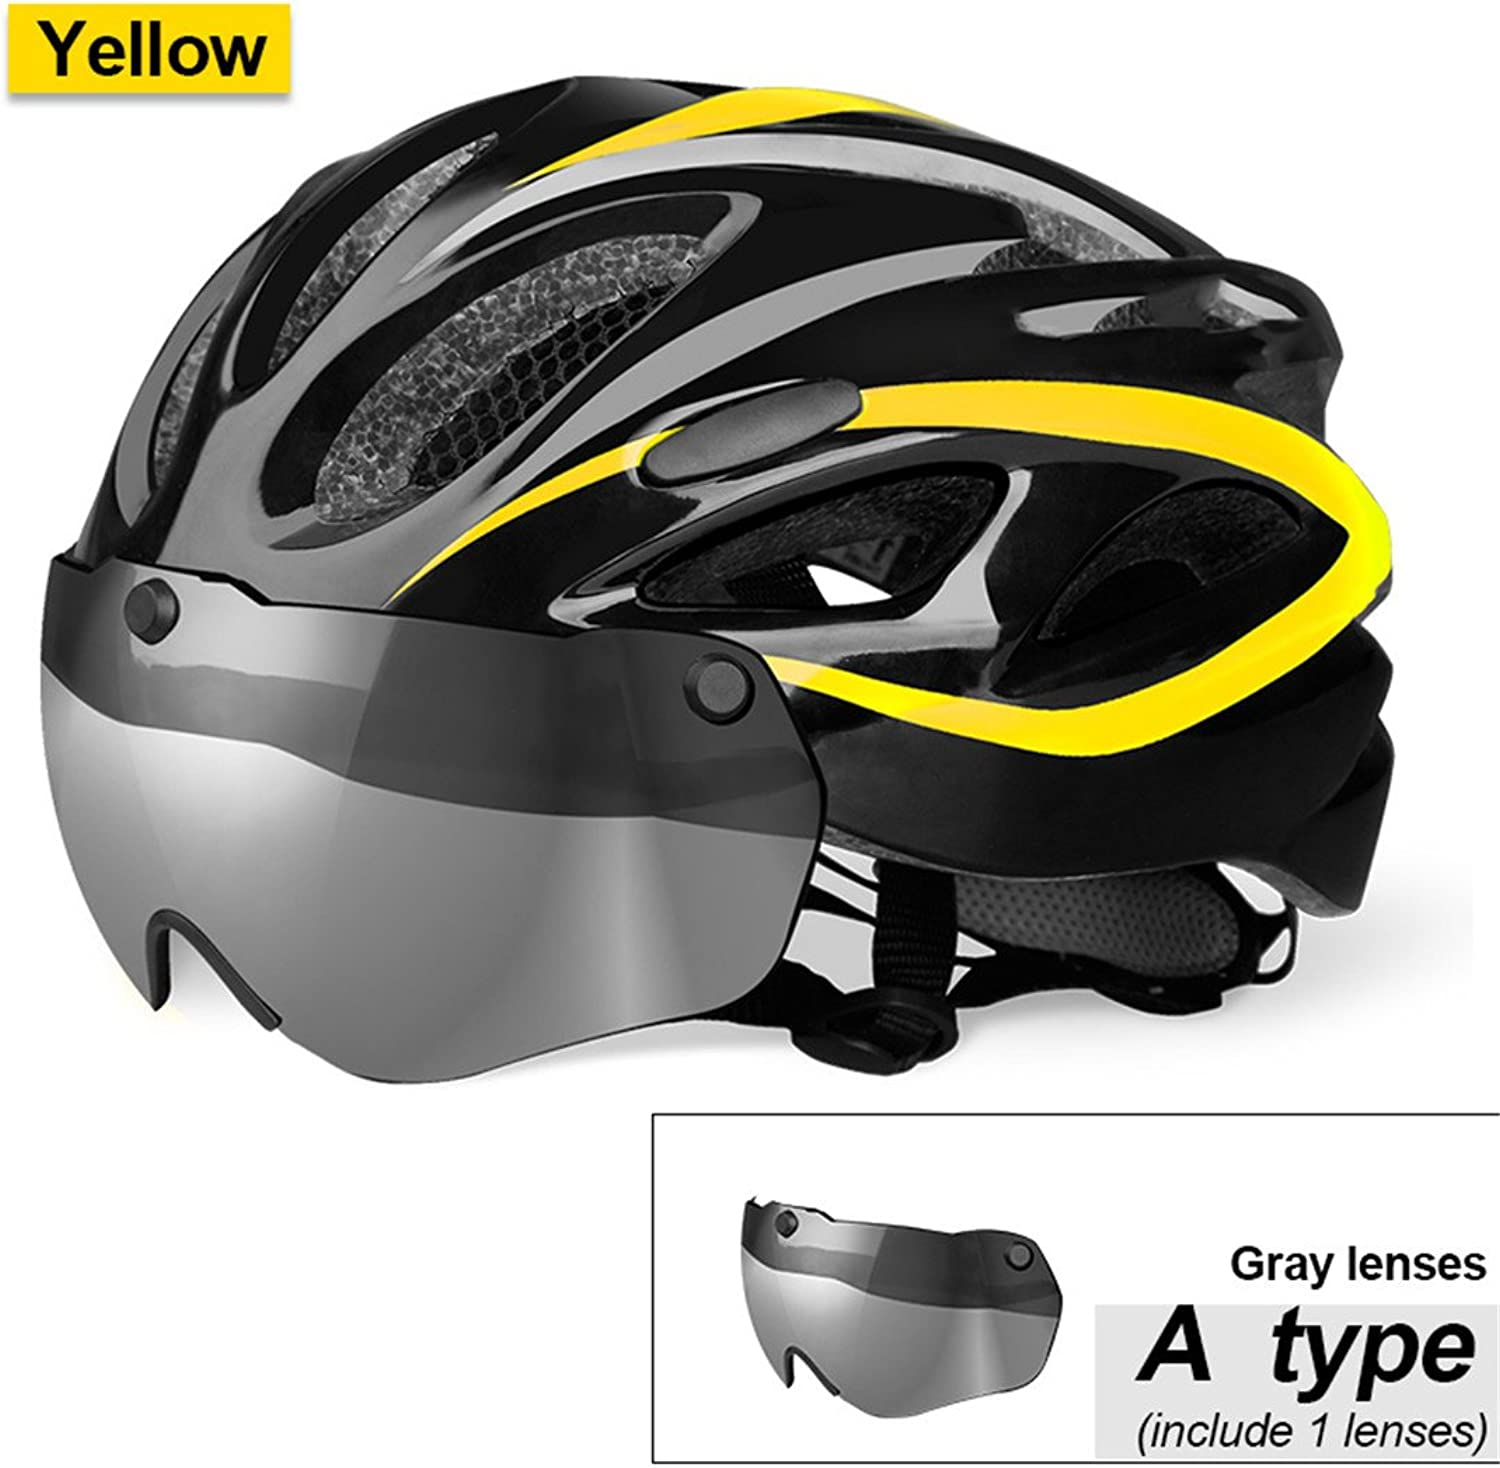 Bicycle Helmet Eps Insect Net Road MTB Bike Windproof Lenses IntegrallyMolded Cycling Casco Ciclismo